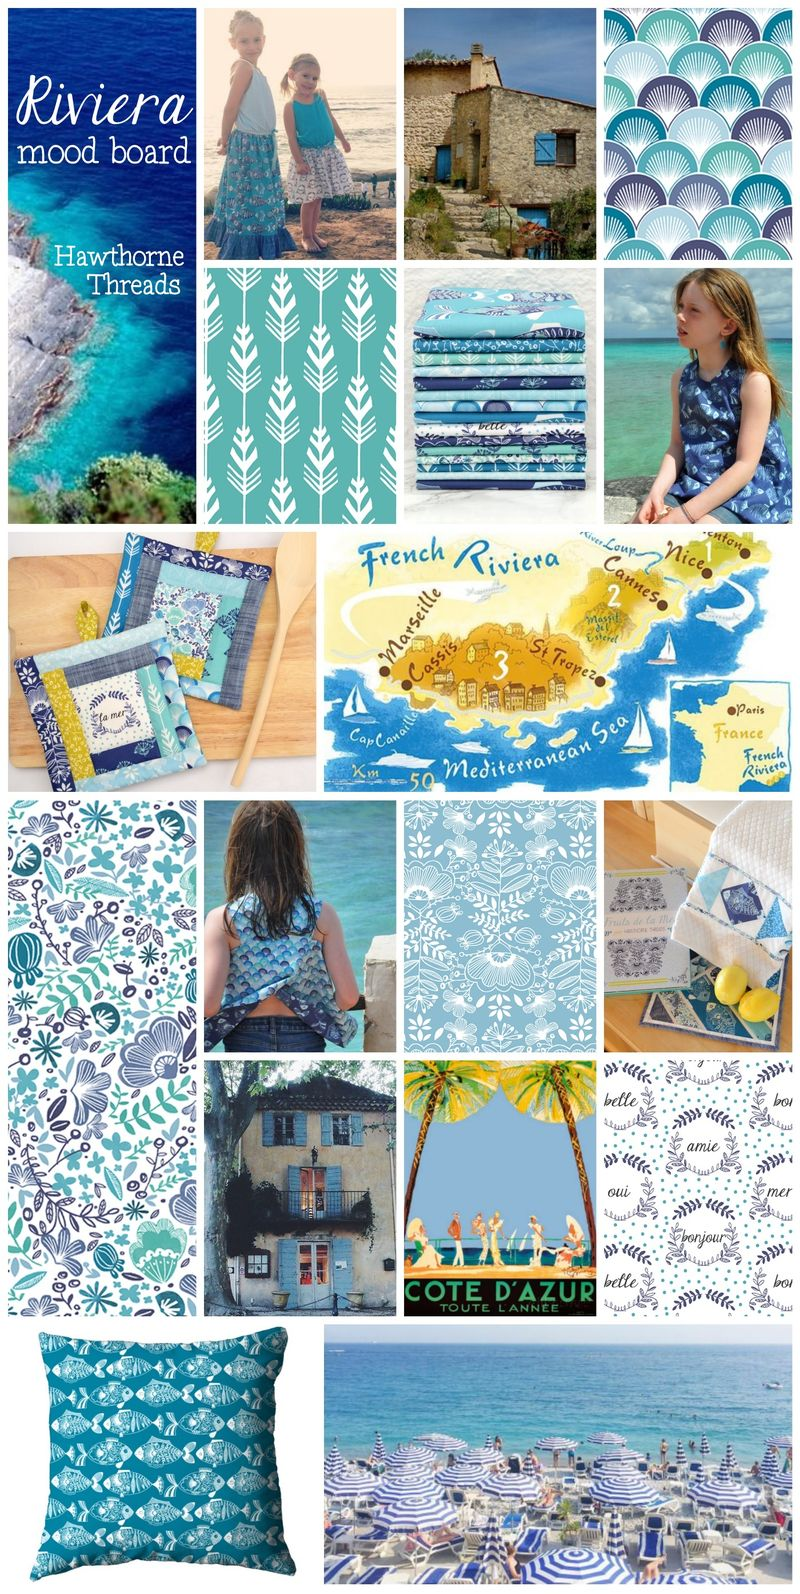 Riviera Mood Board in Mediterranean